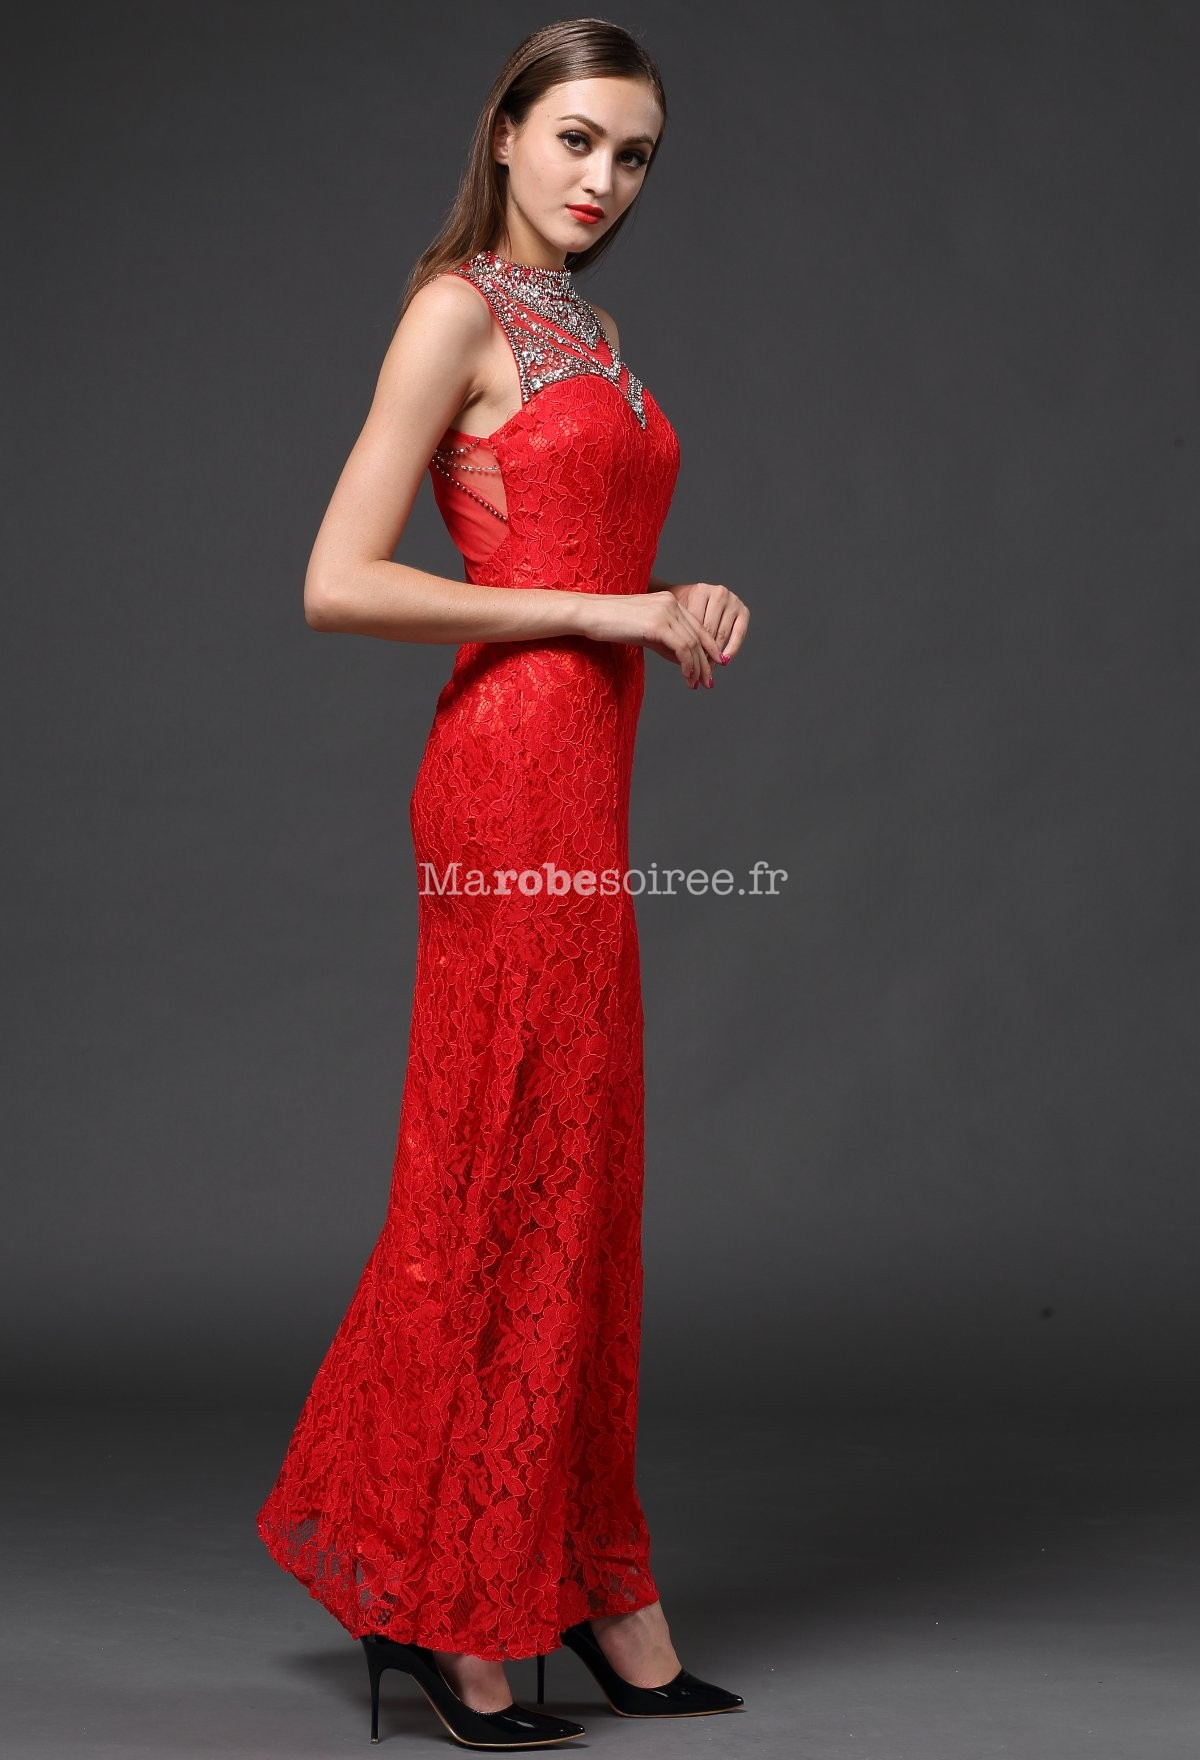 Robe de soiree rouge moulante